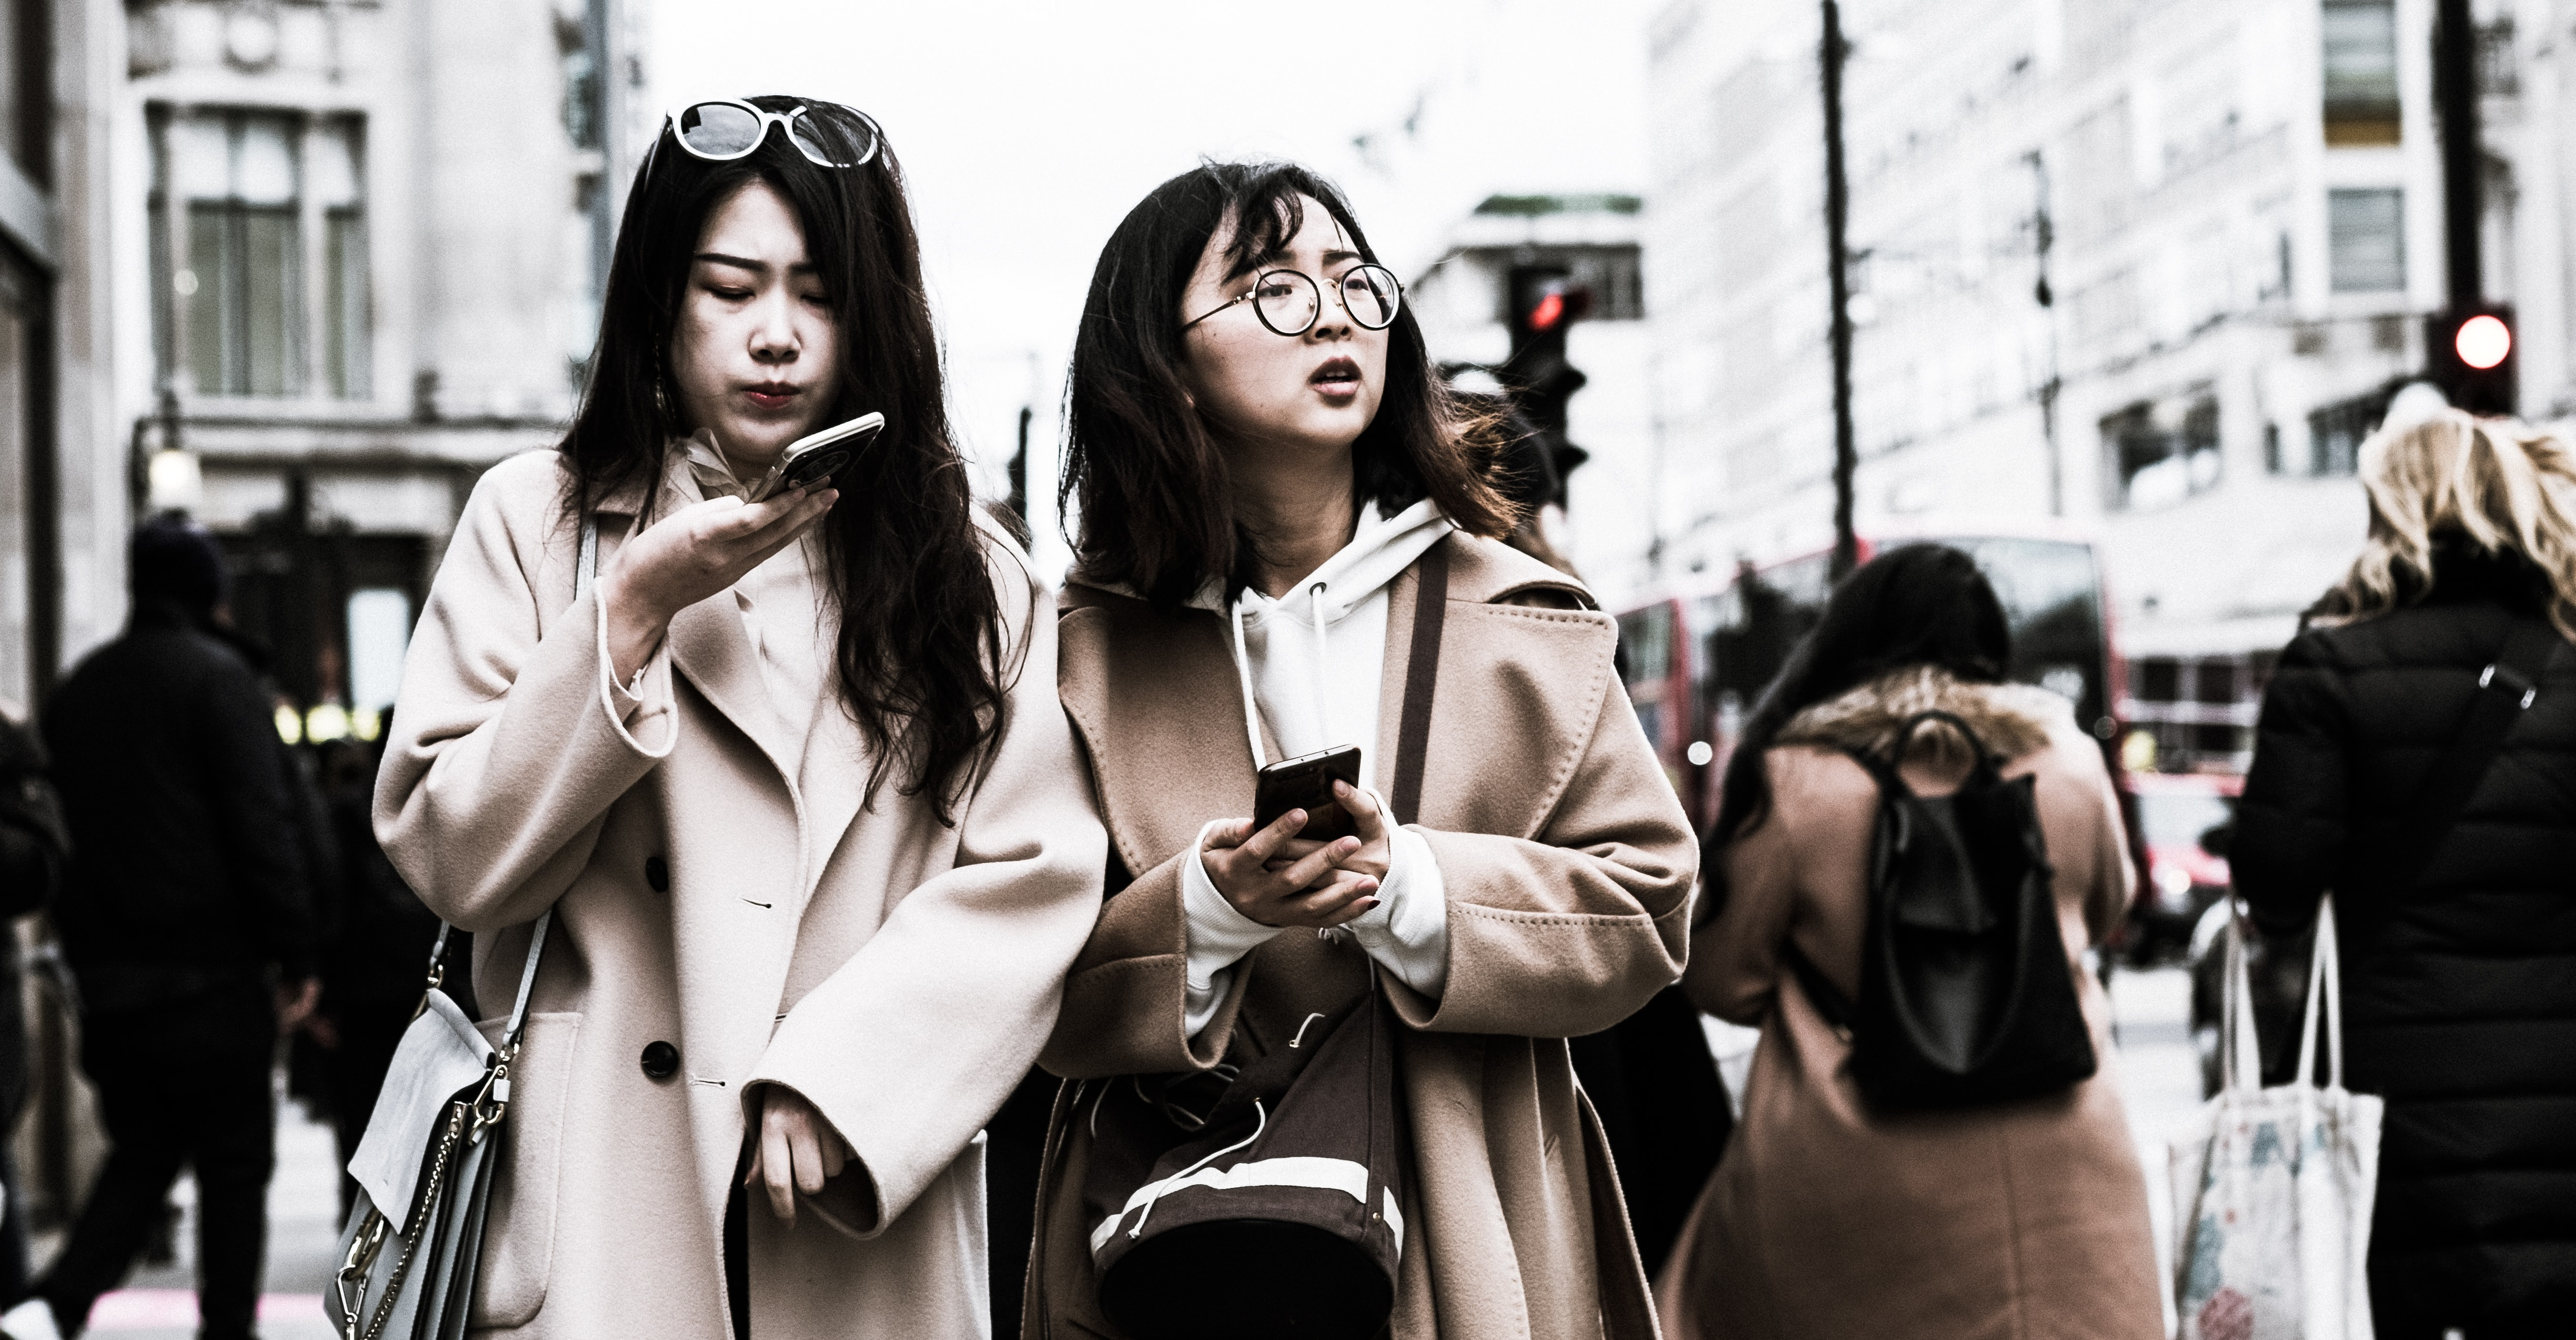 two woman holding smartphones